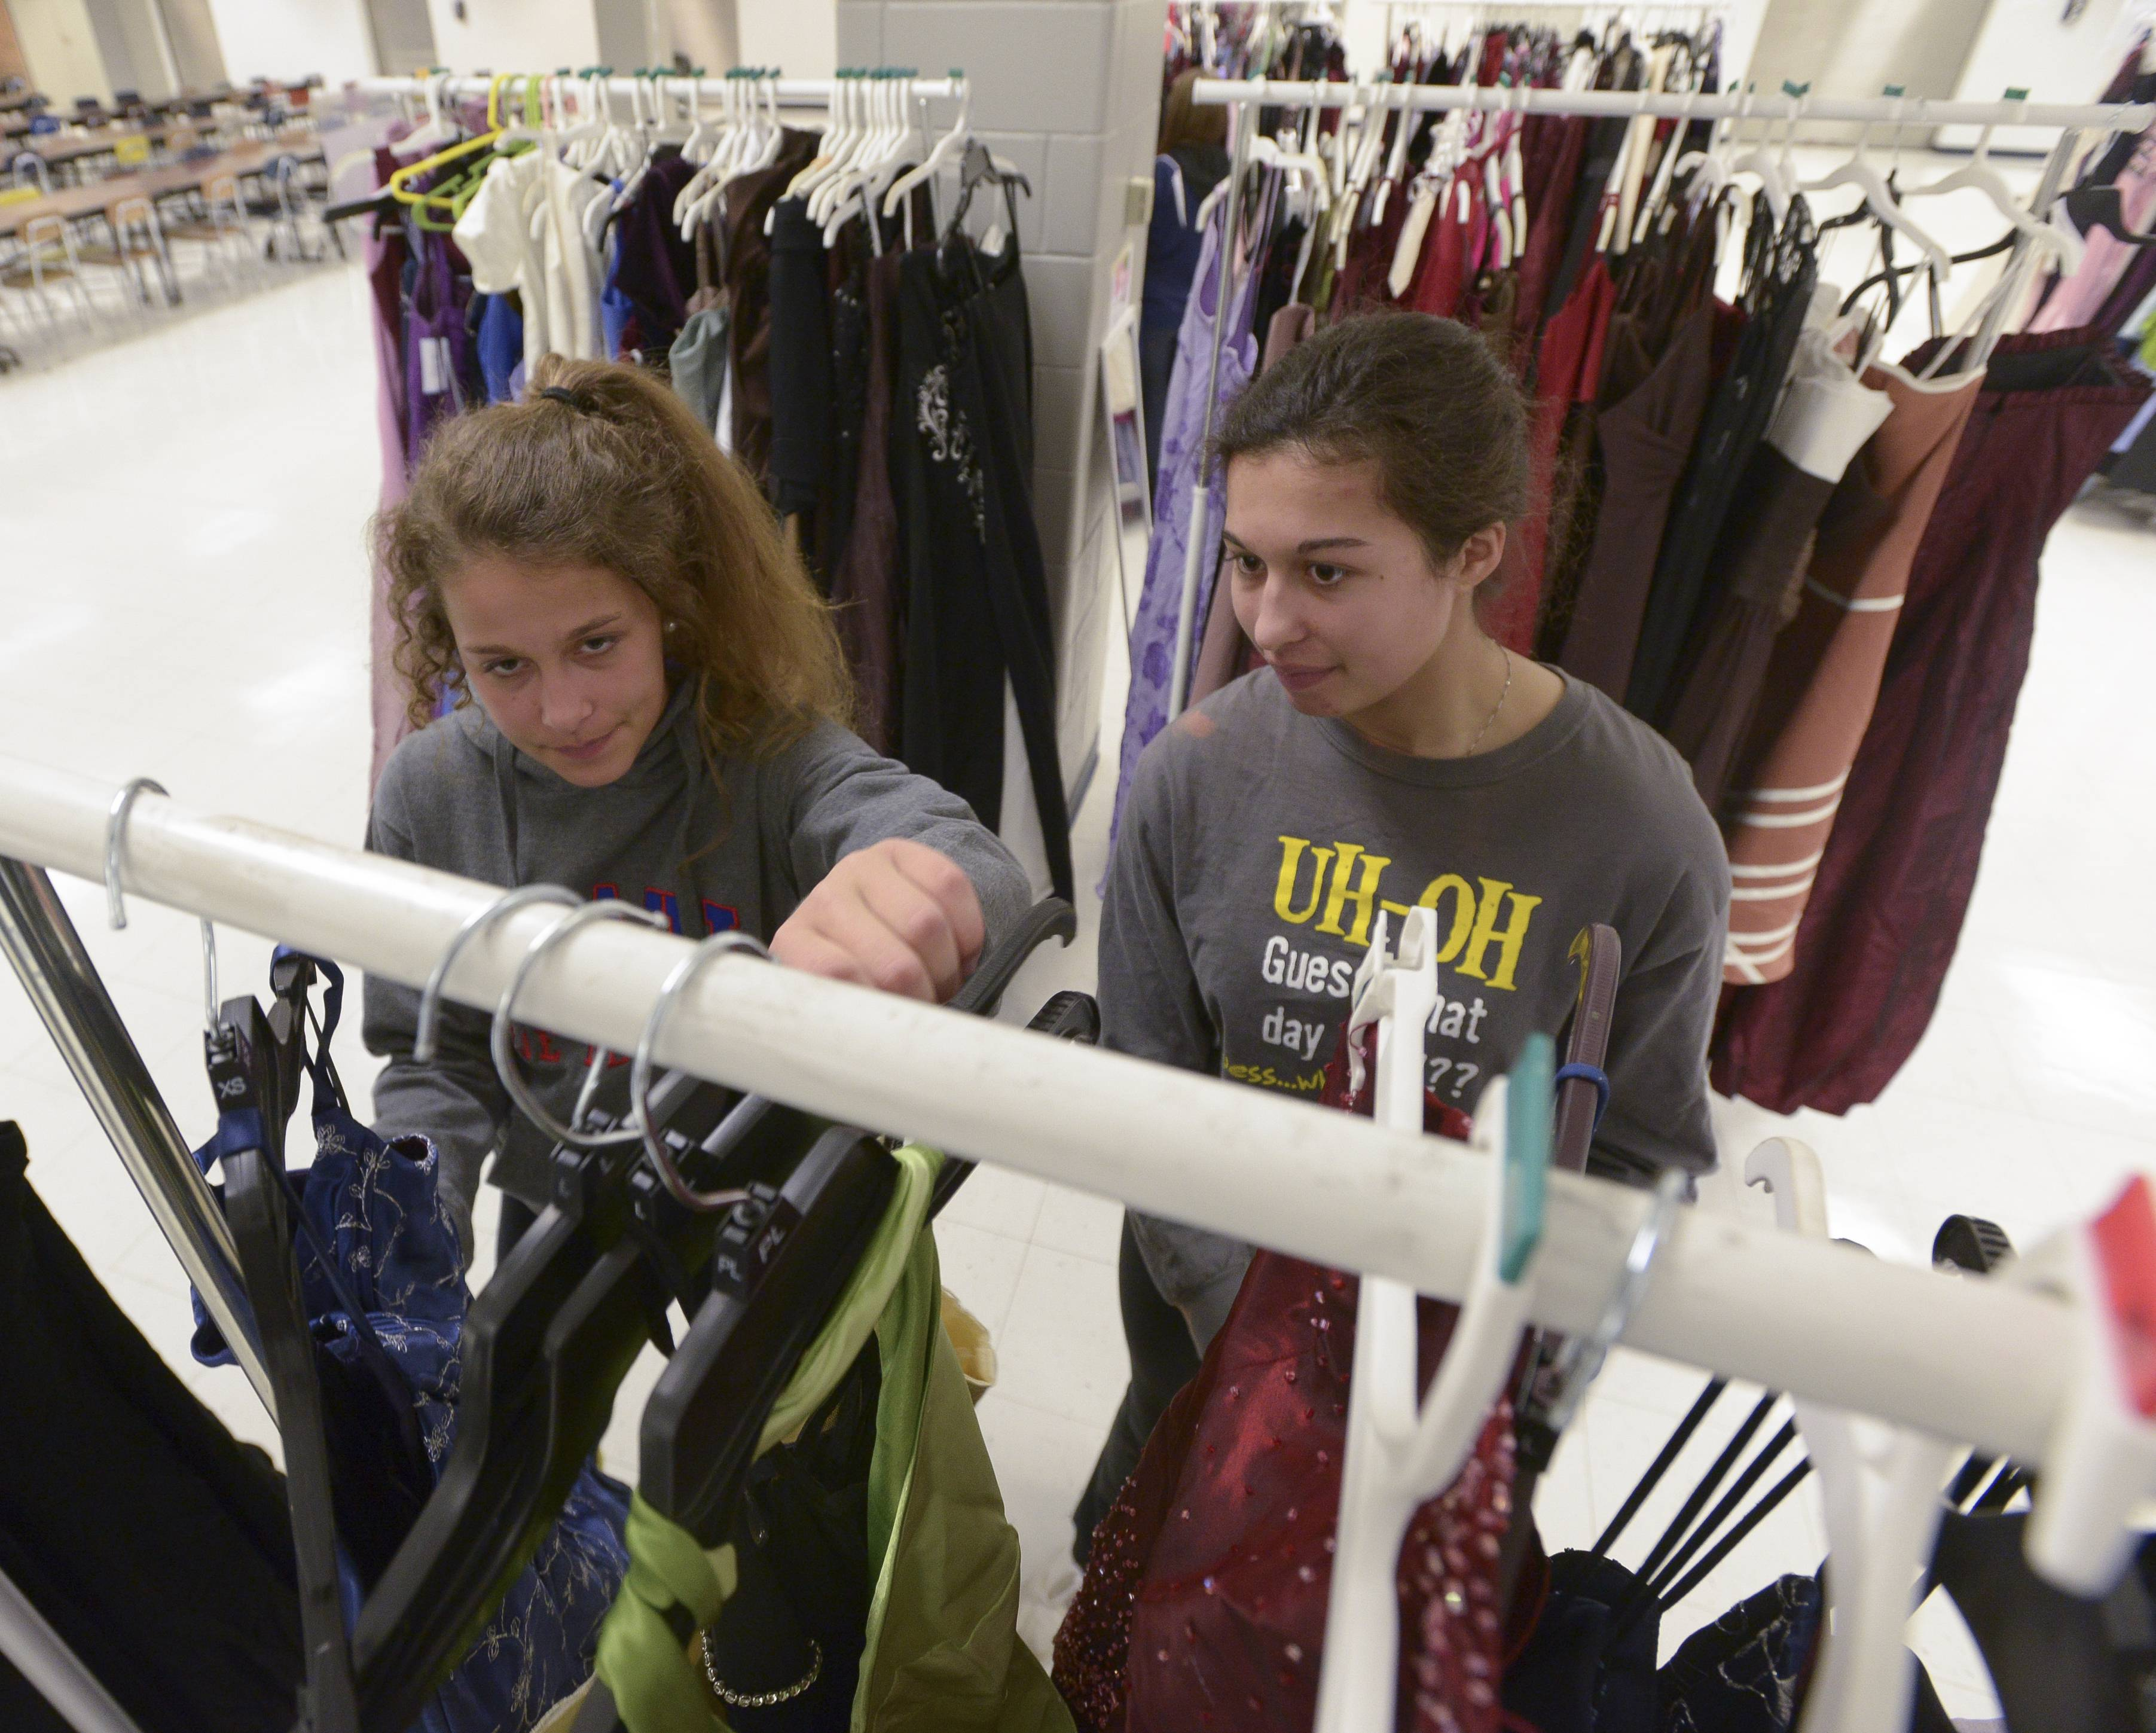 "St. Charles North sisters Elizabeth, 16 and Victoria Parrilli, 17 search for prom dresses they likes during the ""Prom Goes Green"" event sponsored by USagain at West Chicago Community High School. The event allows girls to get free prom dresses to offset the high cost of going to prom."